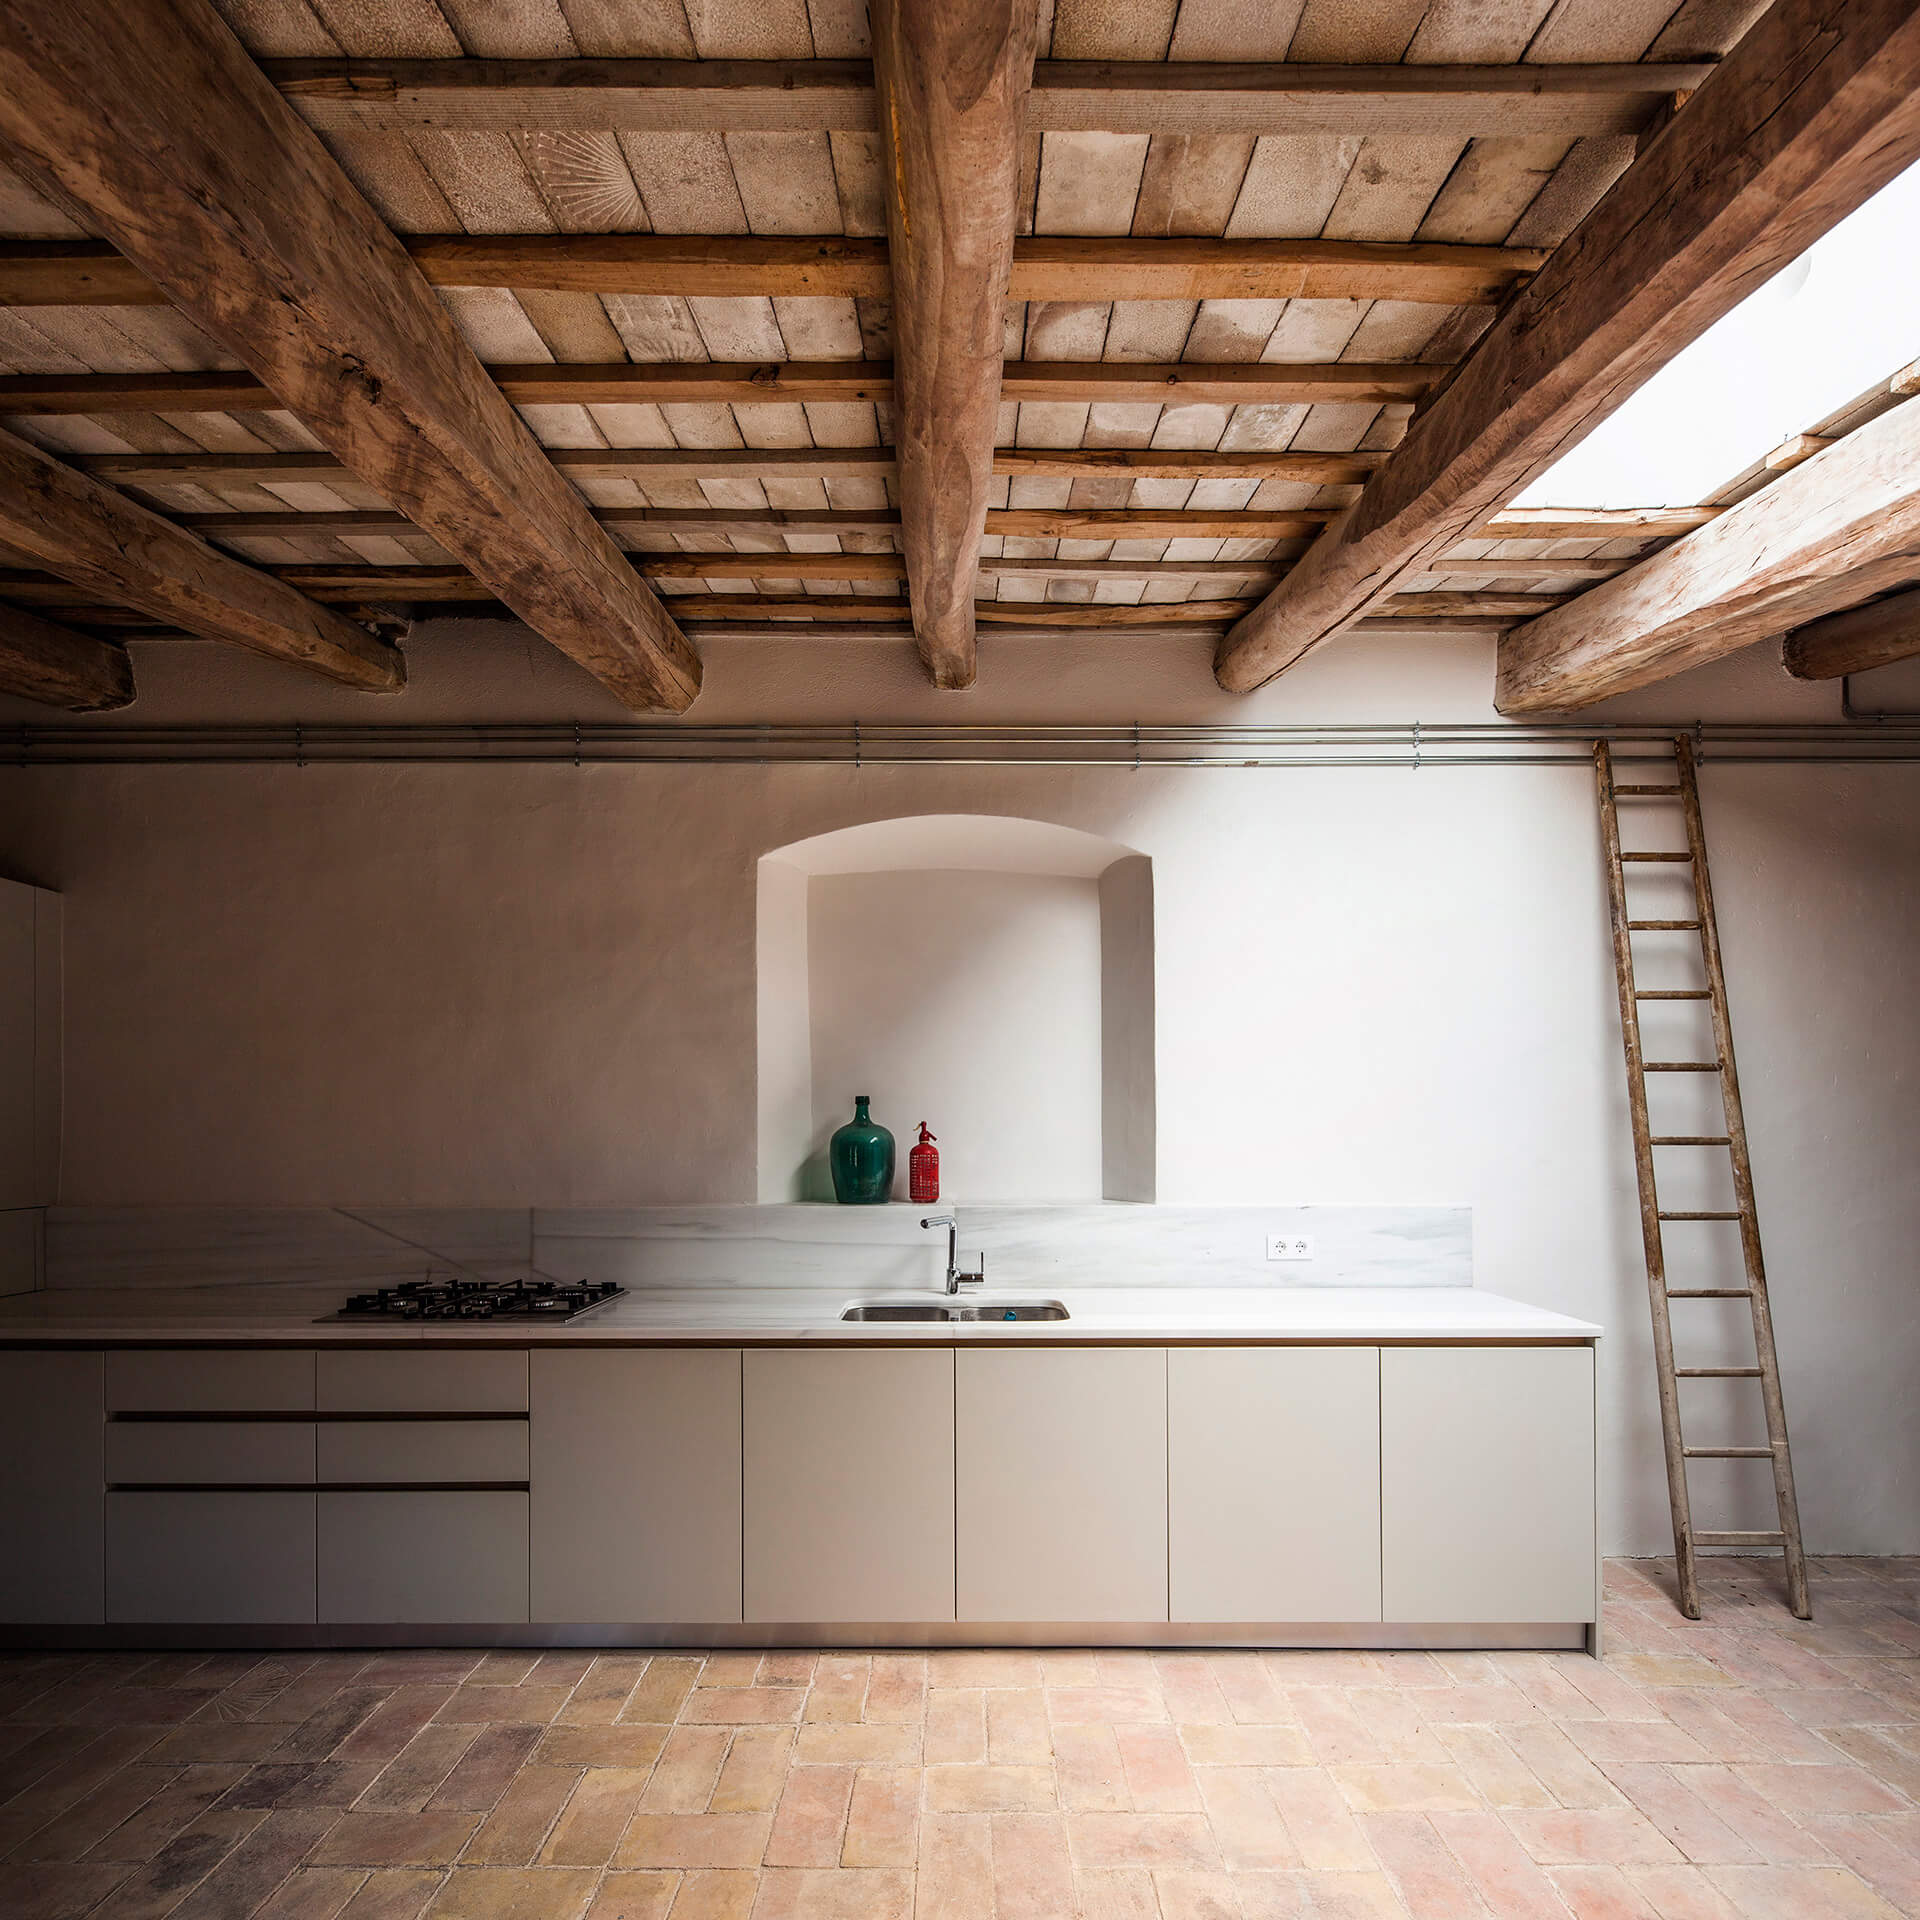 Second floor ceiling, view through kitchen | Dirk and the Chocolate Factory | Anna and Eugeni Bach Architects | STIRworld